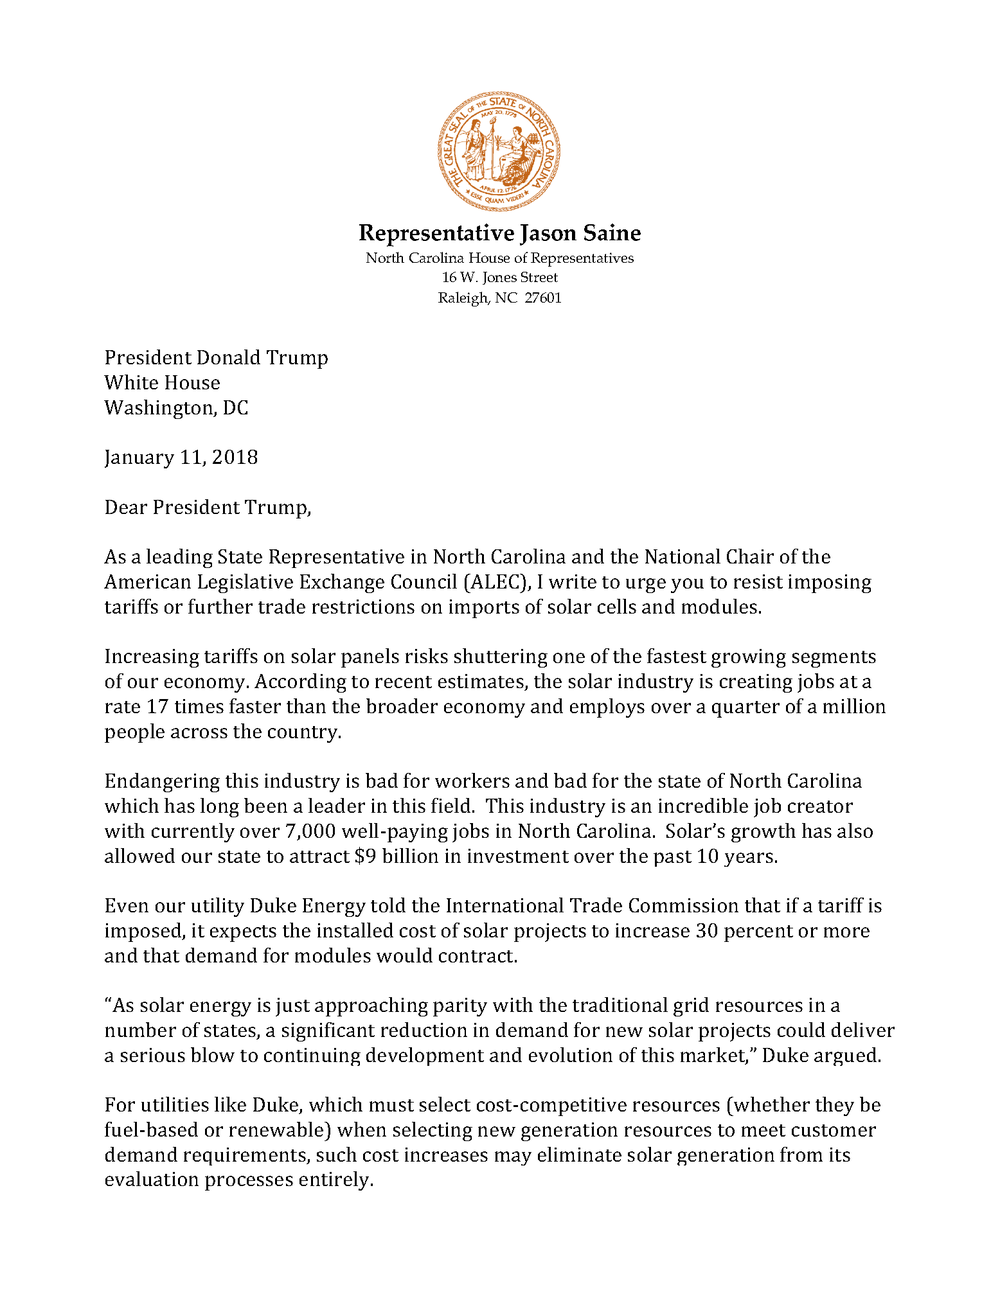 Rep Saine Solar Letter to POTUS_Page_1.png